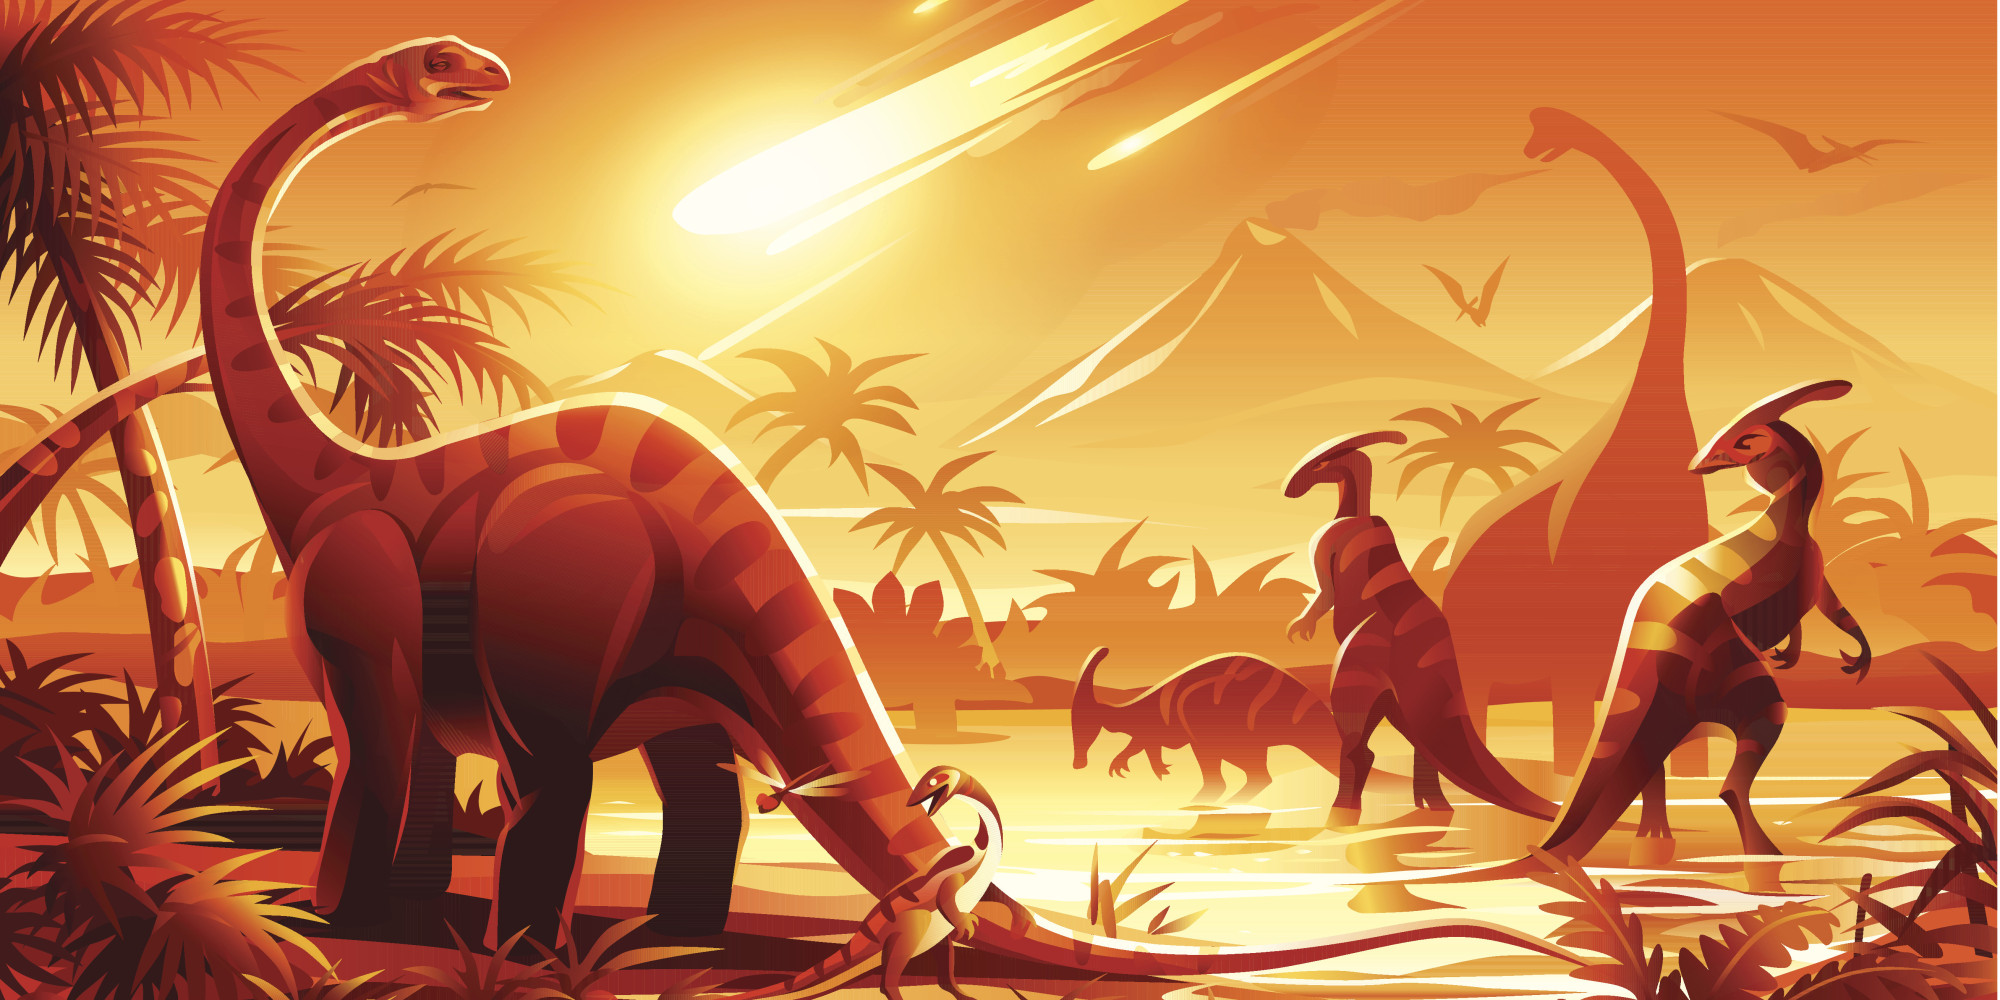 dinosaurs extinction An international team of scientists has come up with the most precise date yet for the extinction of the dinosaurs, bbc news reported their radiometric dating analysis of rock and ash samples indicates that the dinosaurs died out 66,038,000 years ago, plus or minus 11,000 years the findings of the.